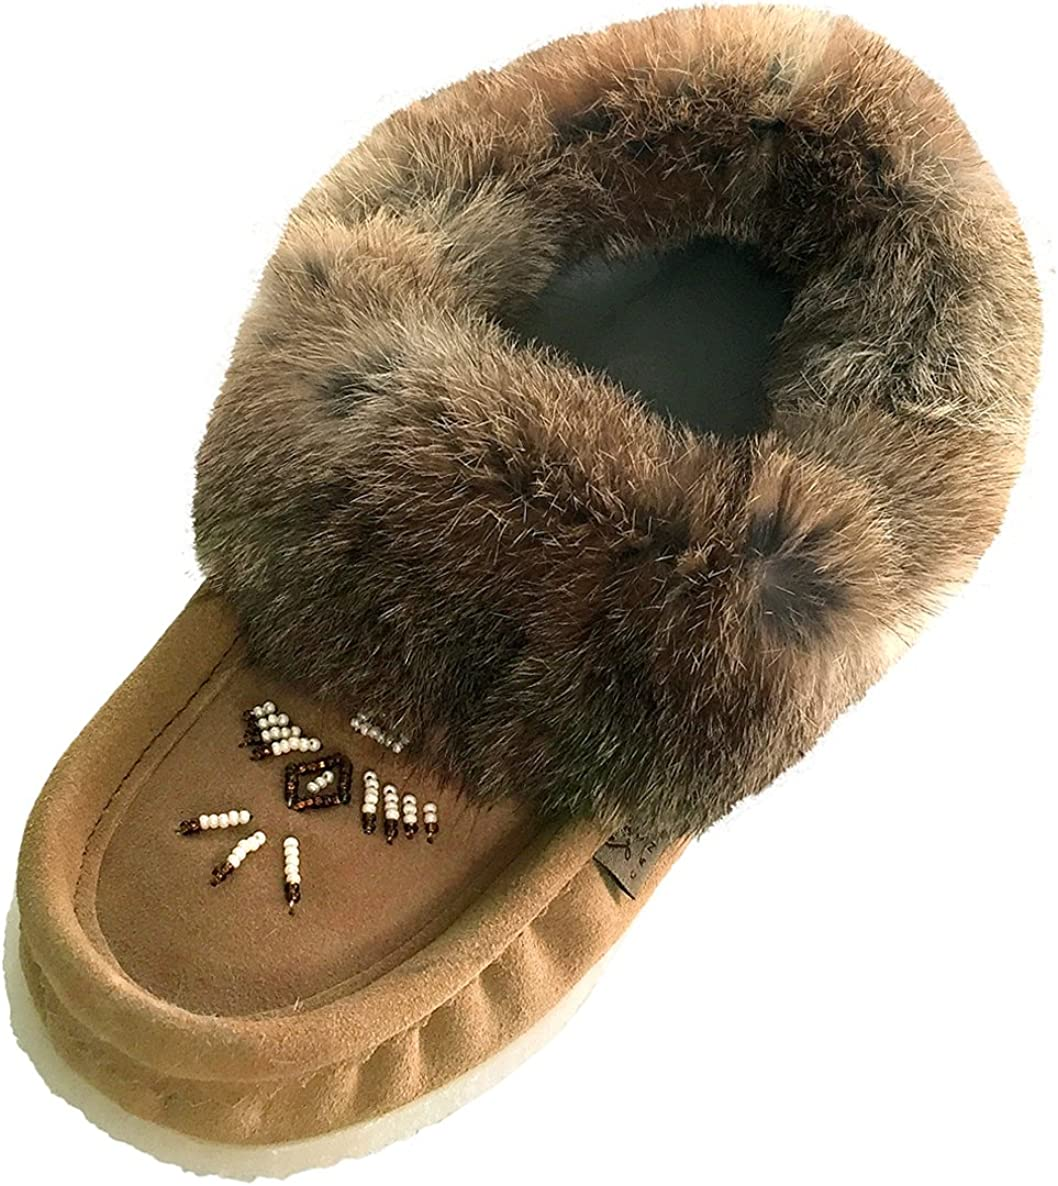 Laurentian Chief Women's Suede Slippers with Rabbit Fur Collar Moccasins